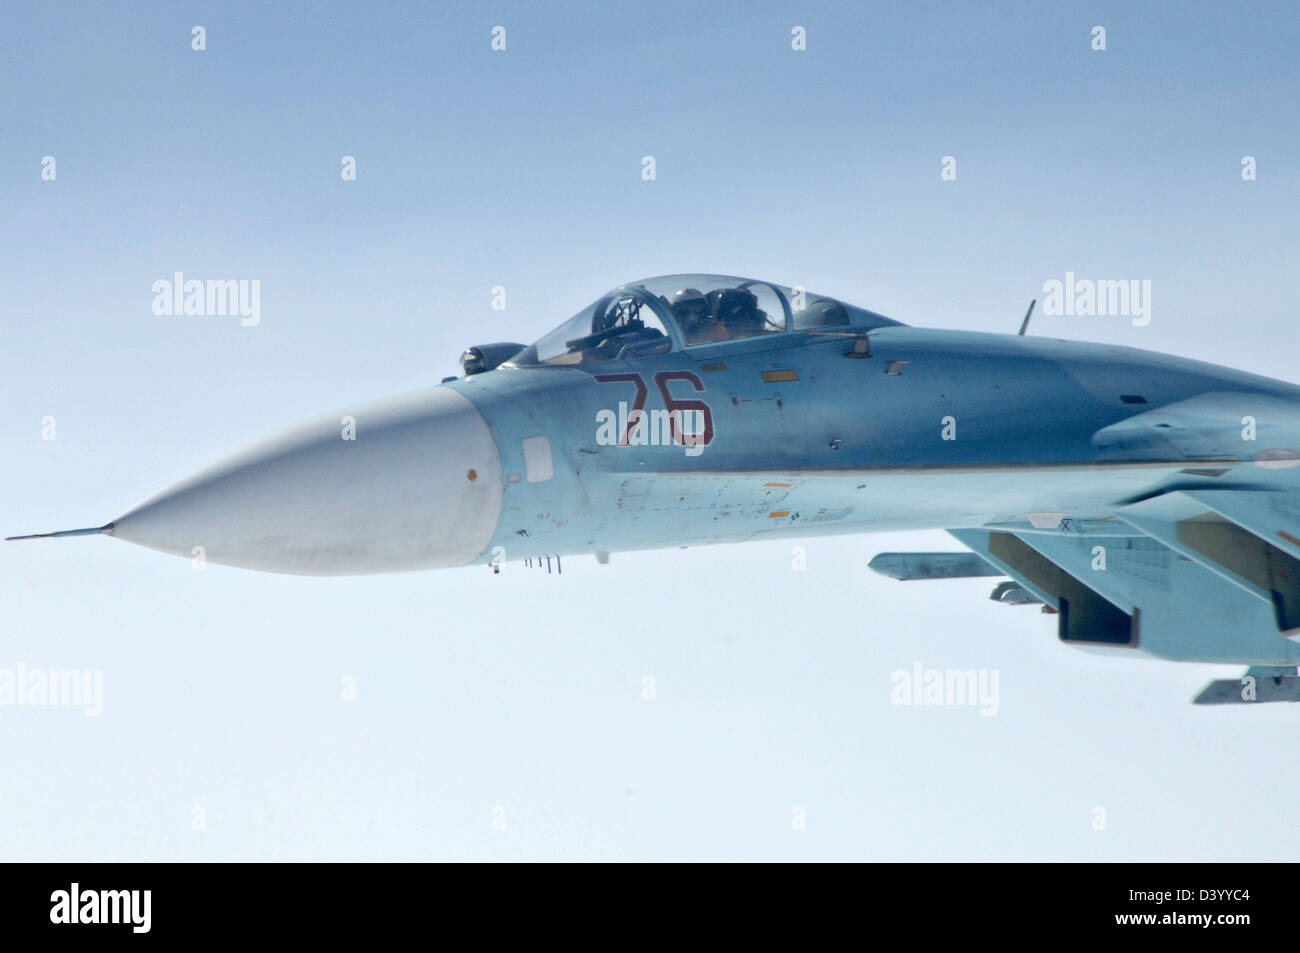 A Russian SU-27 fighter aircraft escorts a simulated hijacked airliner during a joint training exercise with US - Stock Image